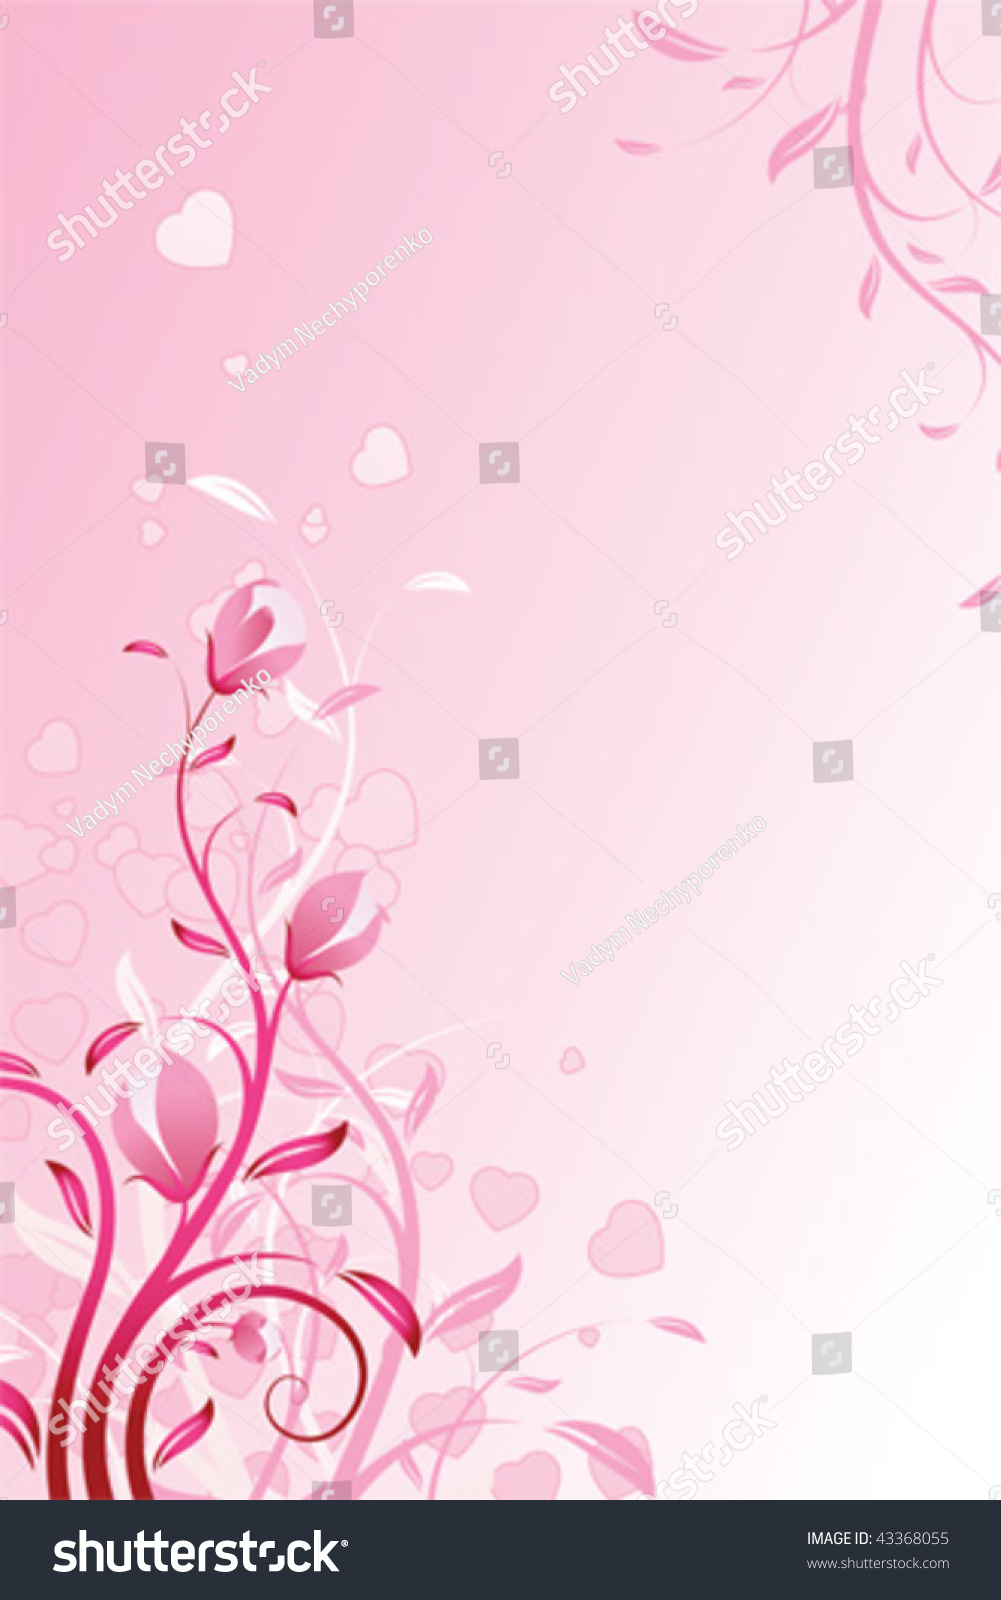 Valentines Day Background Flowers Pink Color Stock Vector Royalty